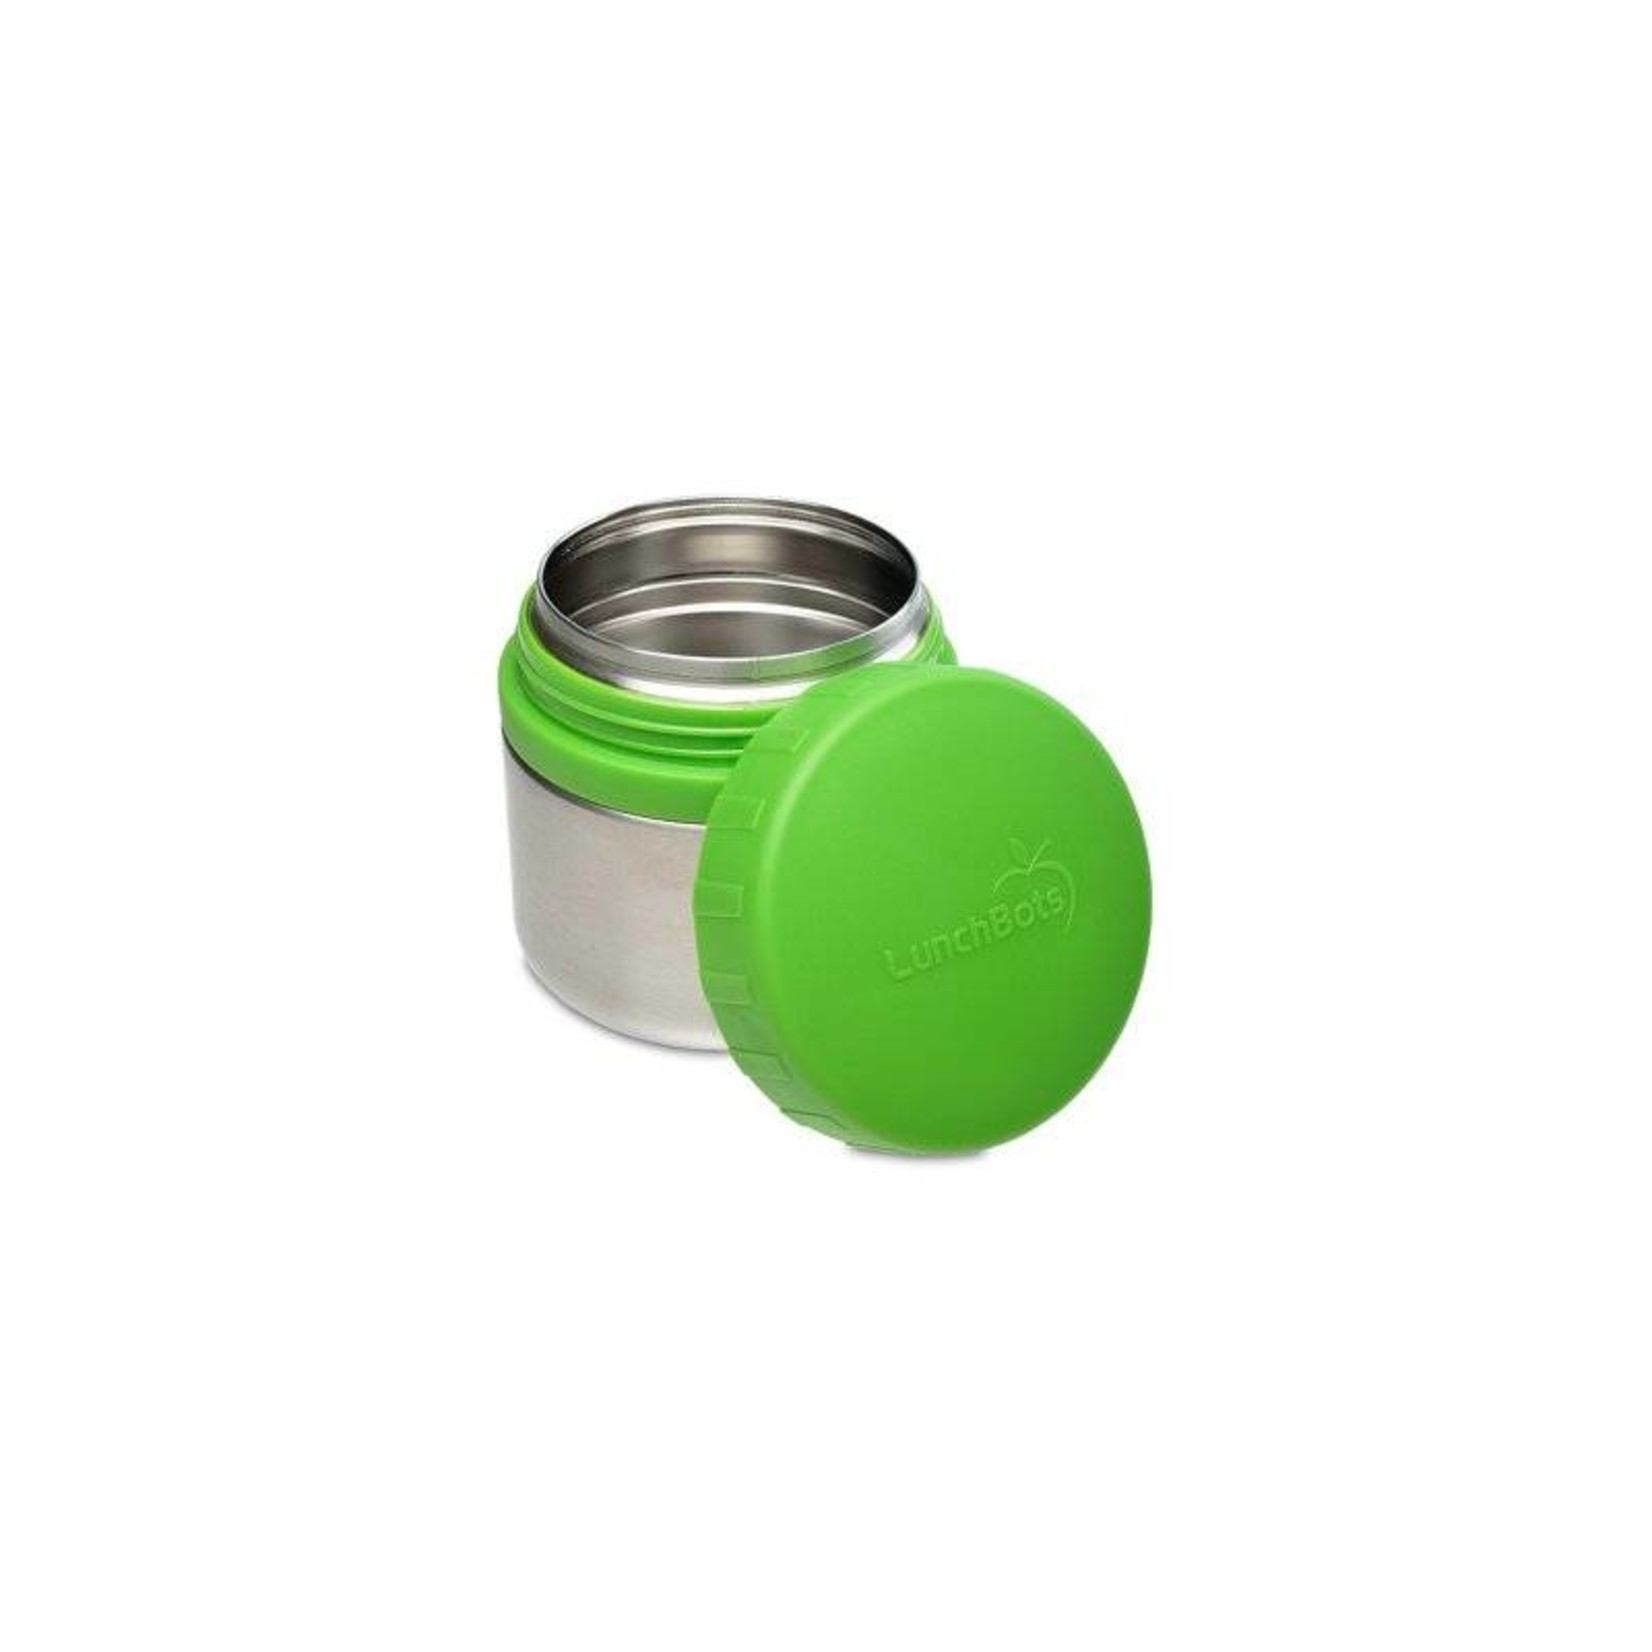 LunchBots Rounds Snack Container